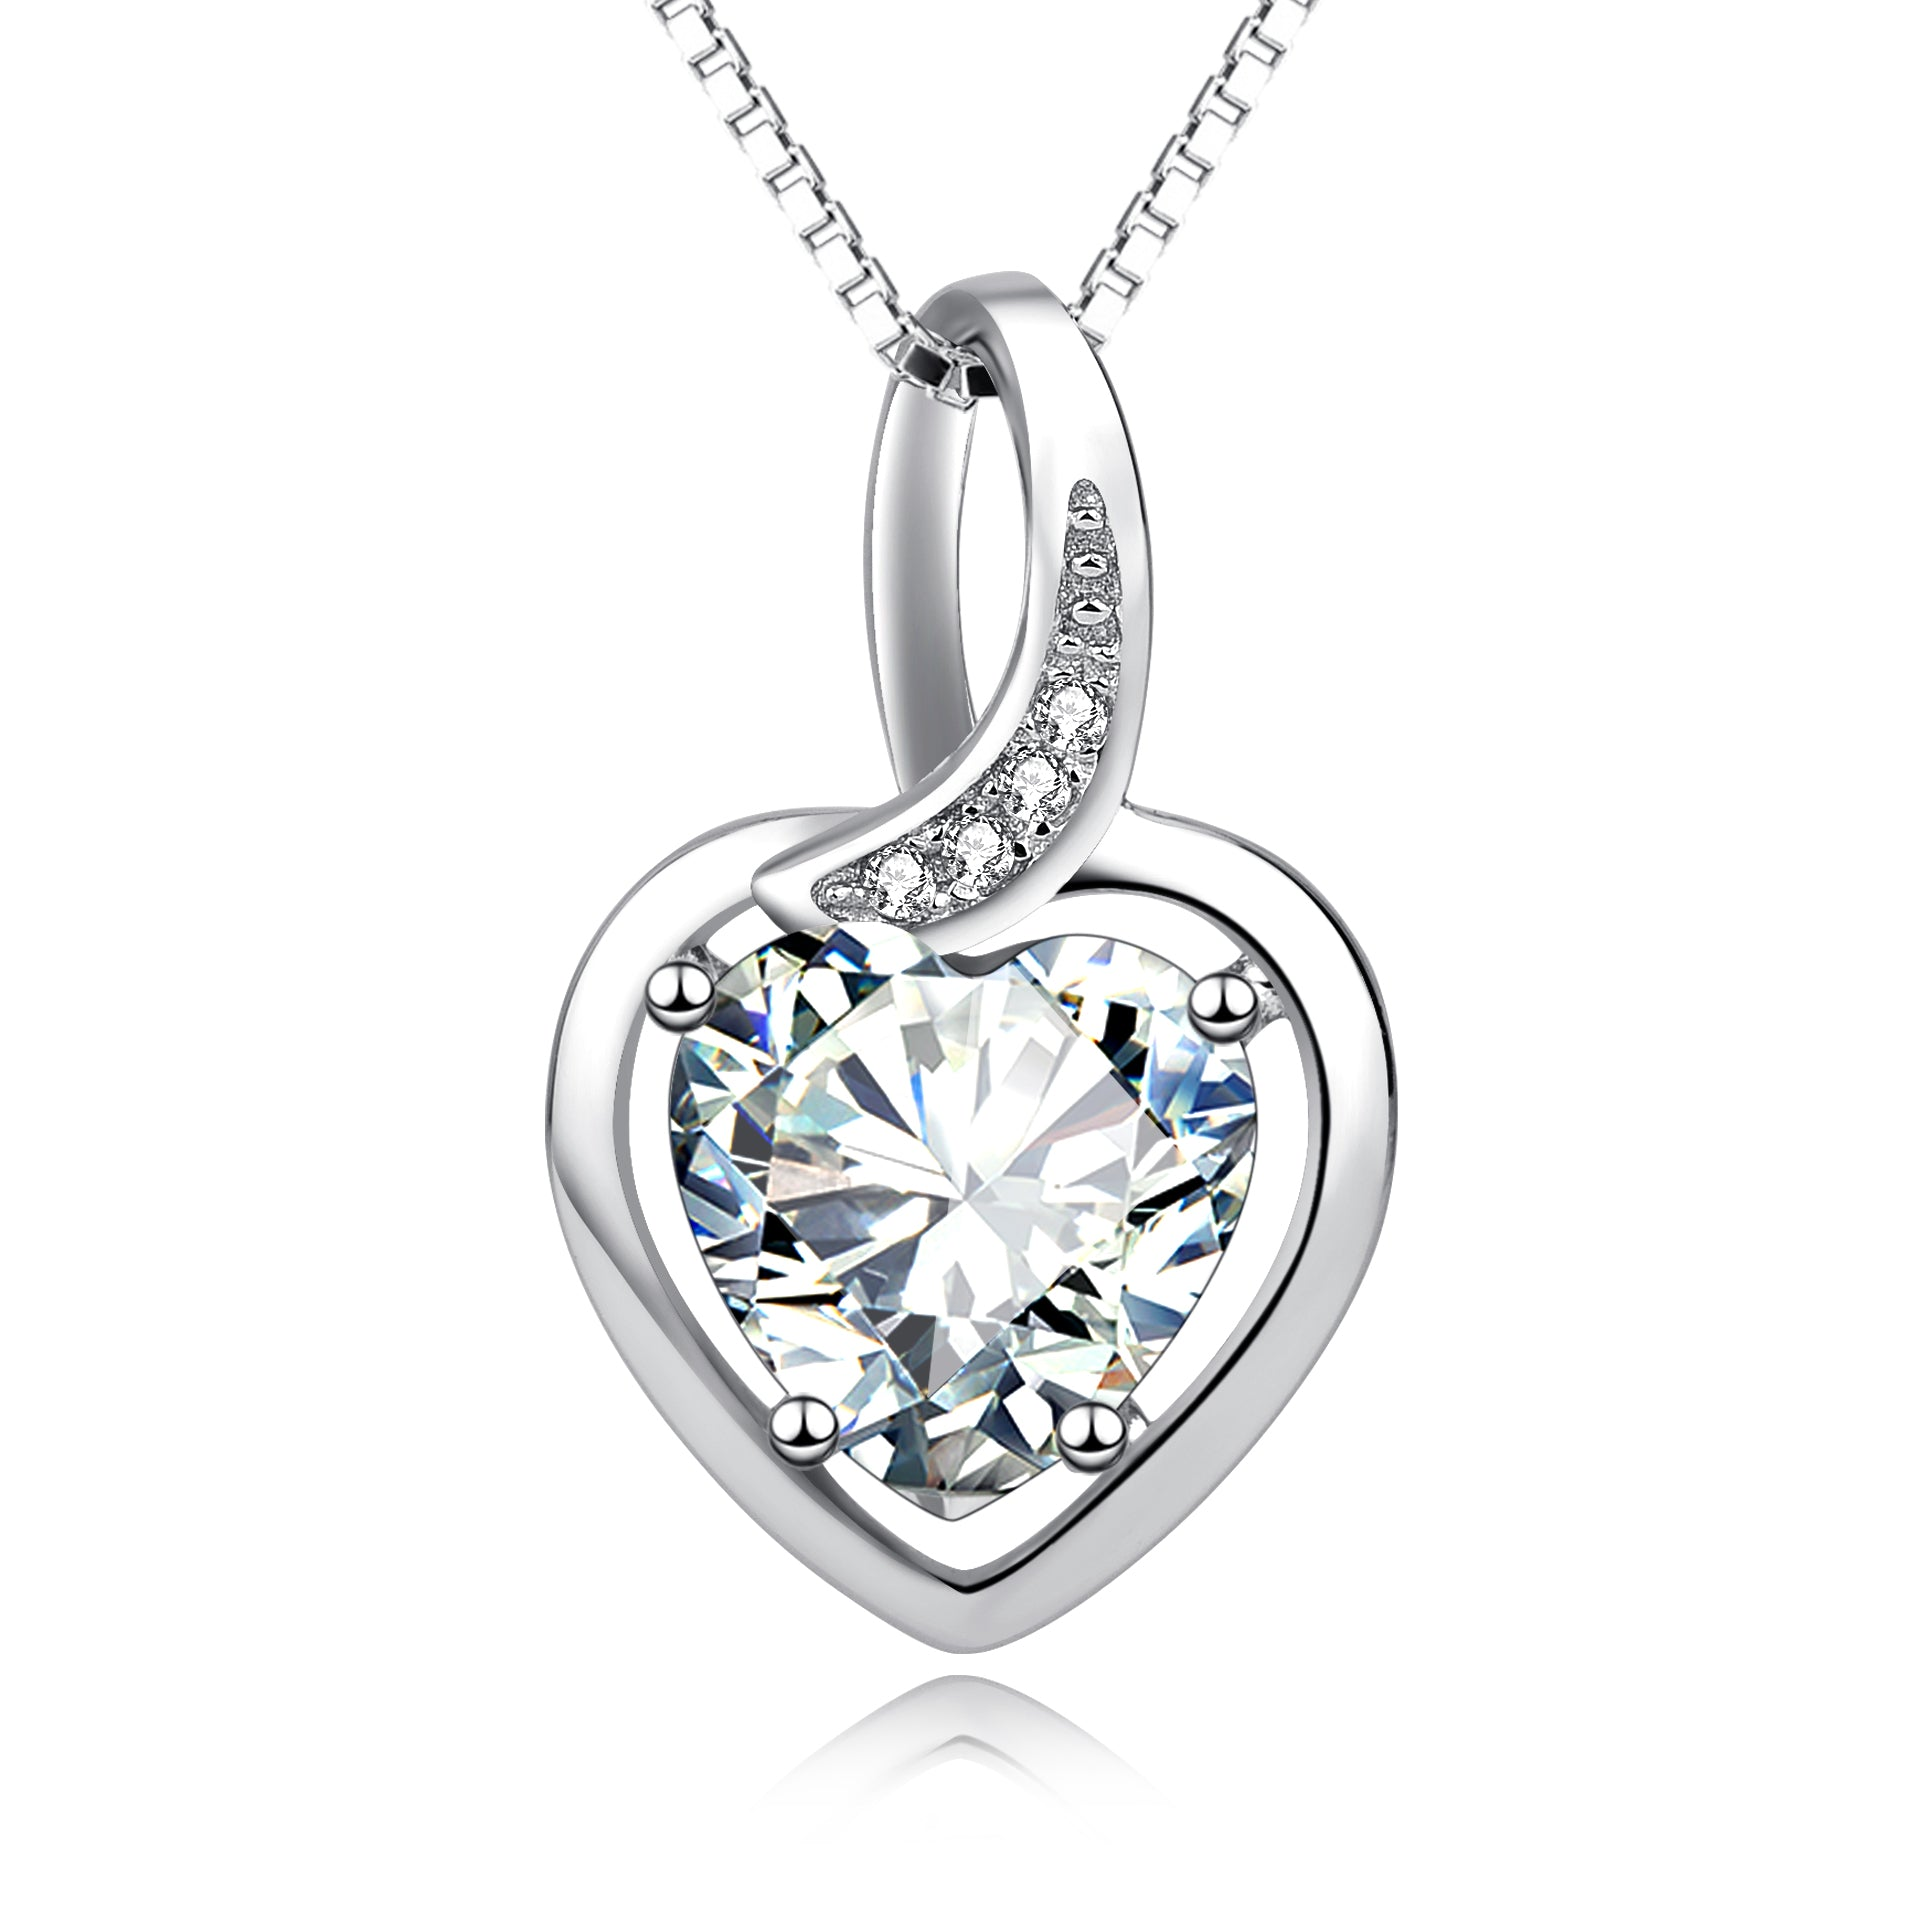 luxury heart necklace crystal bride bridesmaid wedding necklace